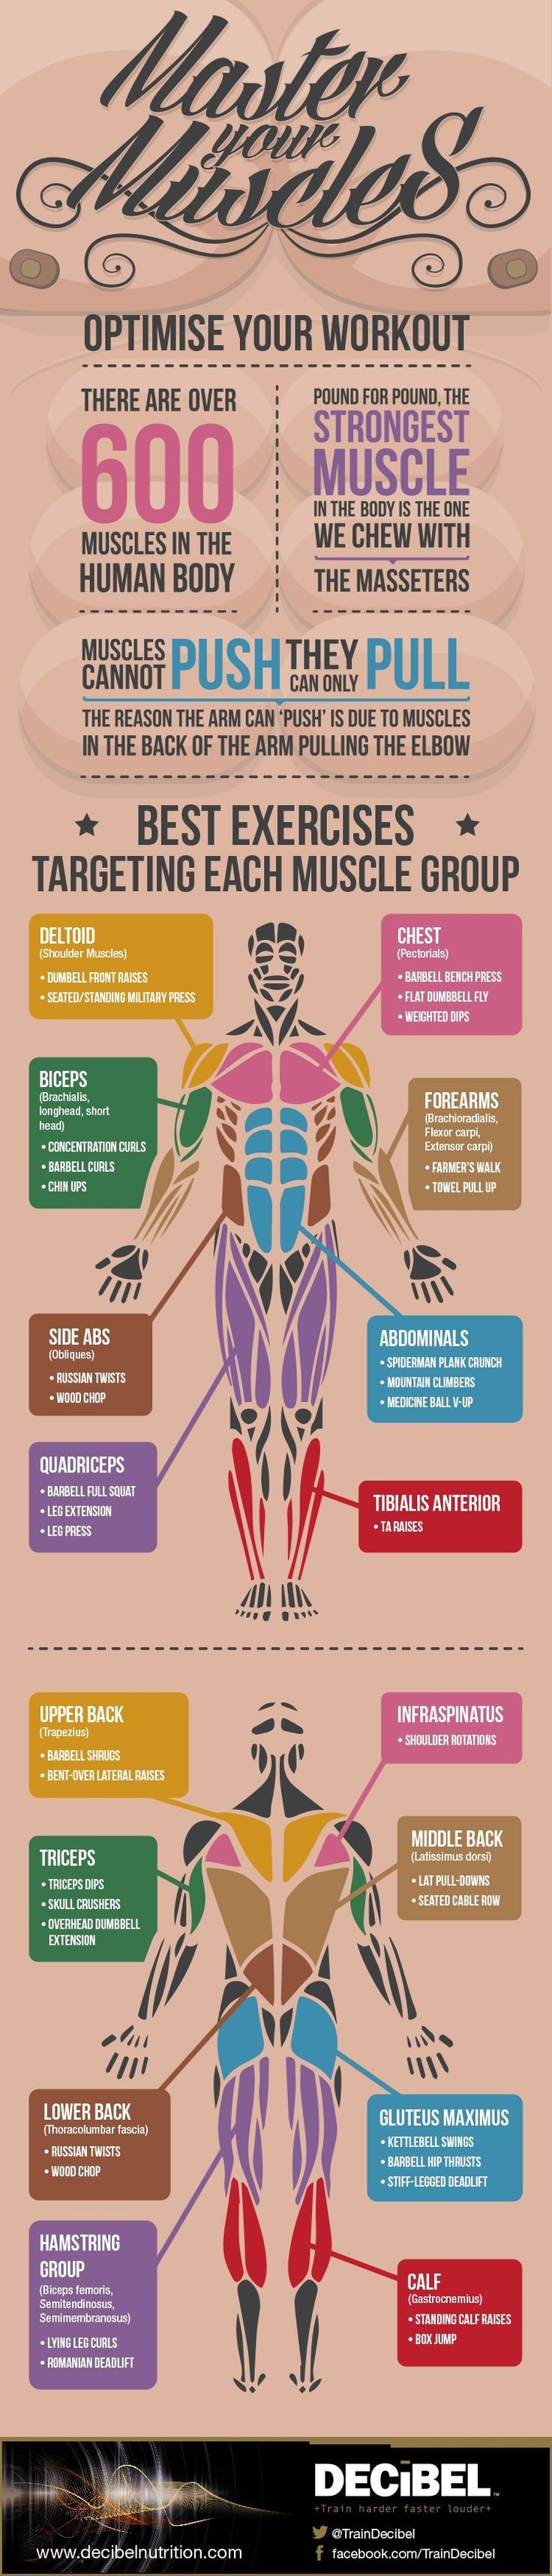 The best exercises for each muscle group.